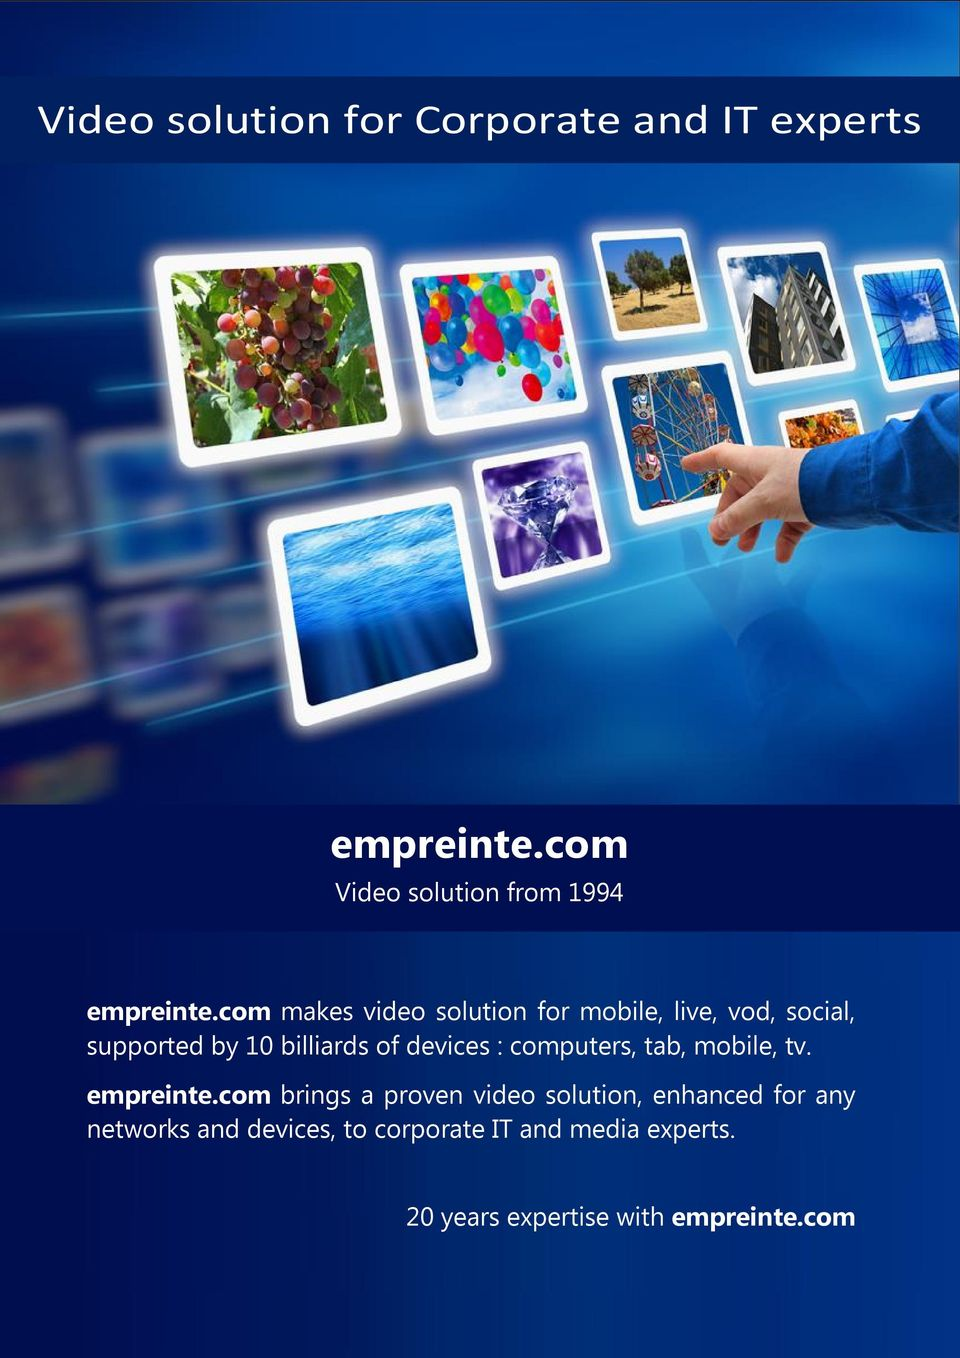 empreinte.com brings a proven video solution, enhanced for any networks and devices, to corporate IT and media experts.